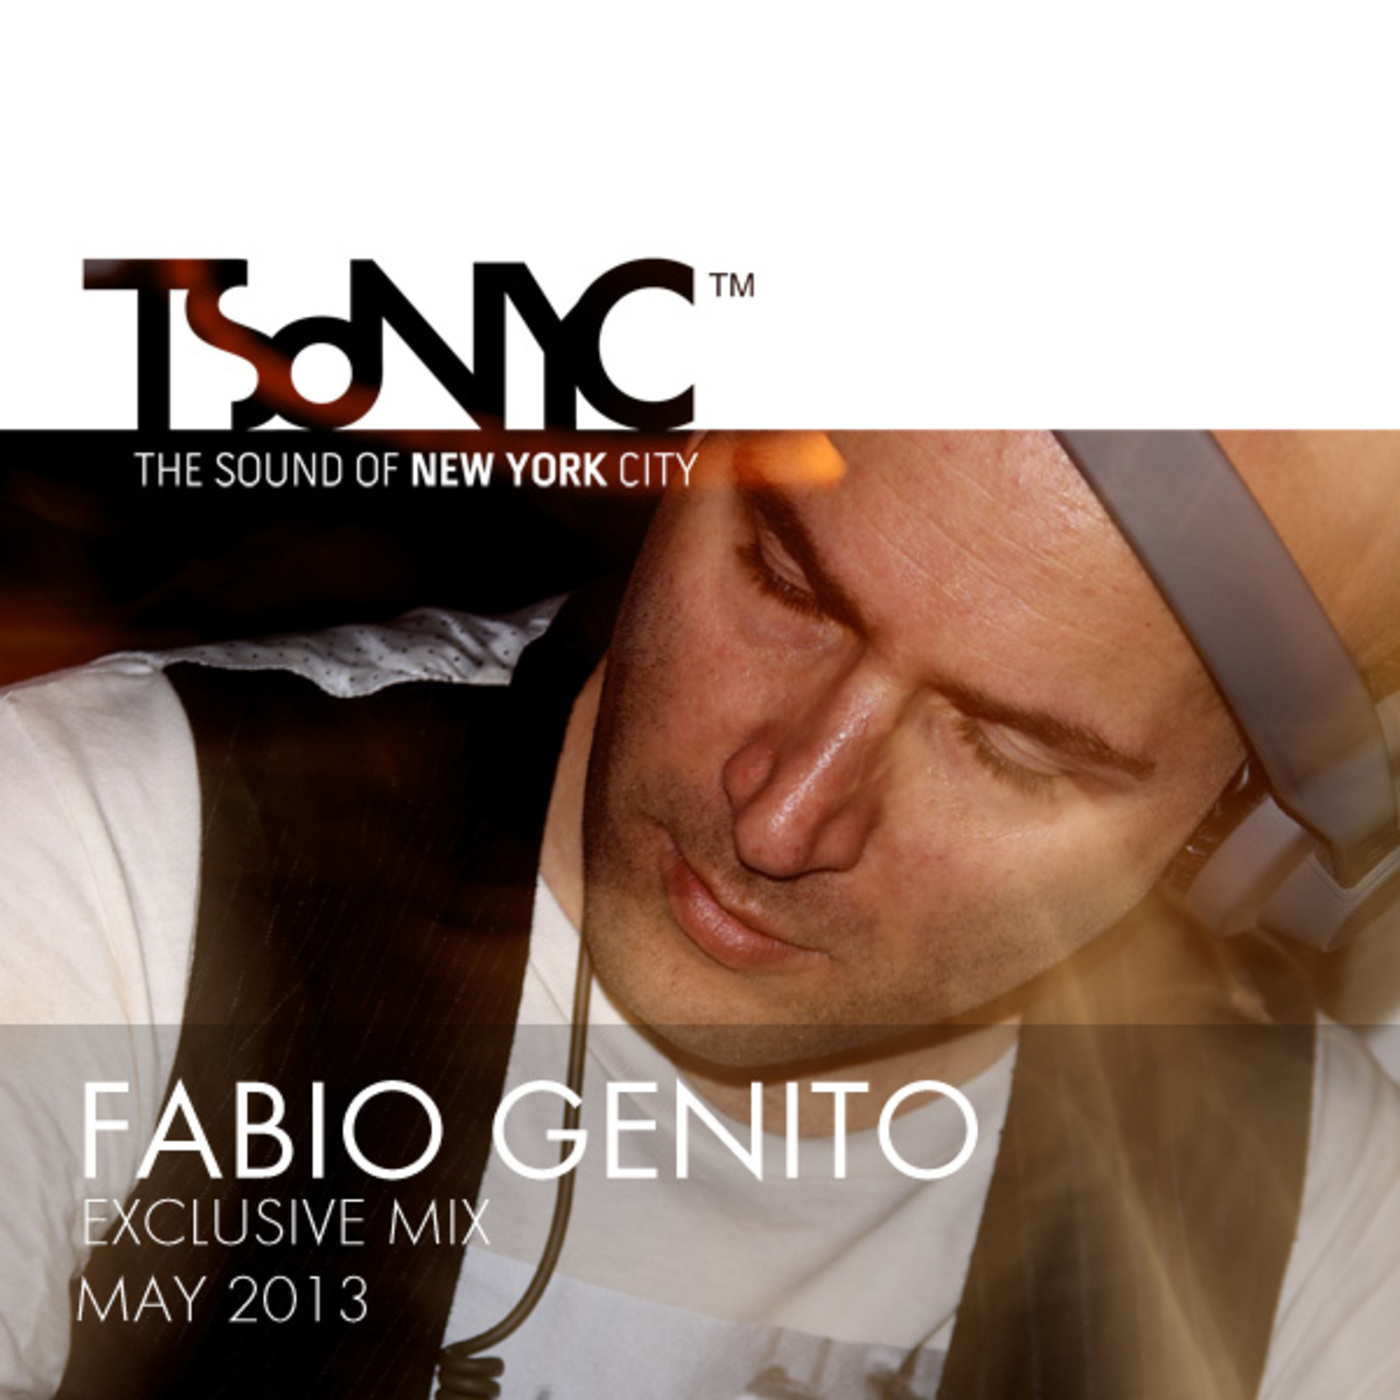 Vasco Rossi 2014 Album Lxiv Tsonyc Fabio Genito Exclusive Mix May 22 2013 Mix